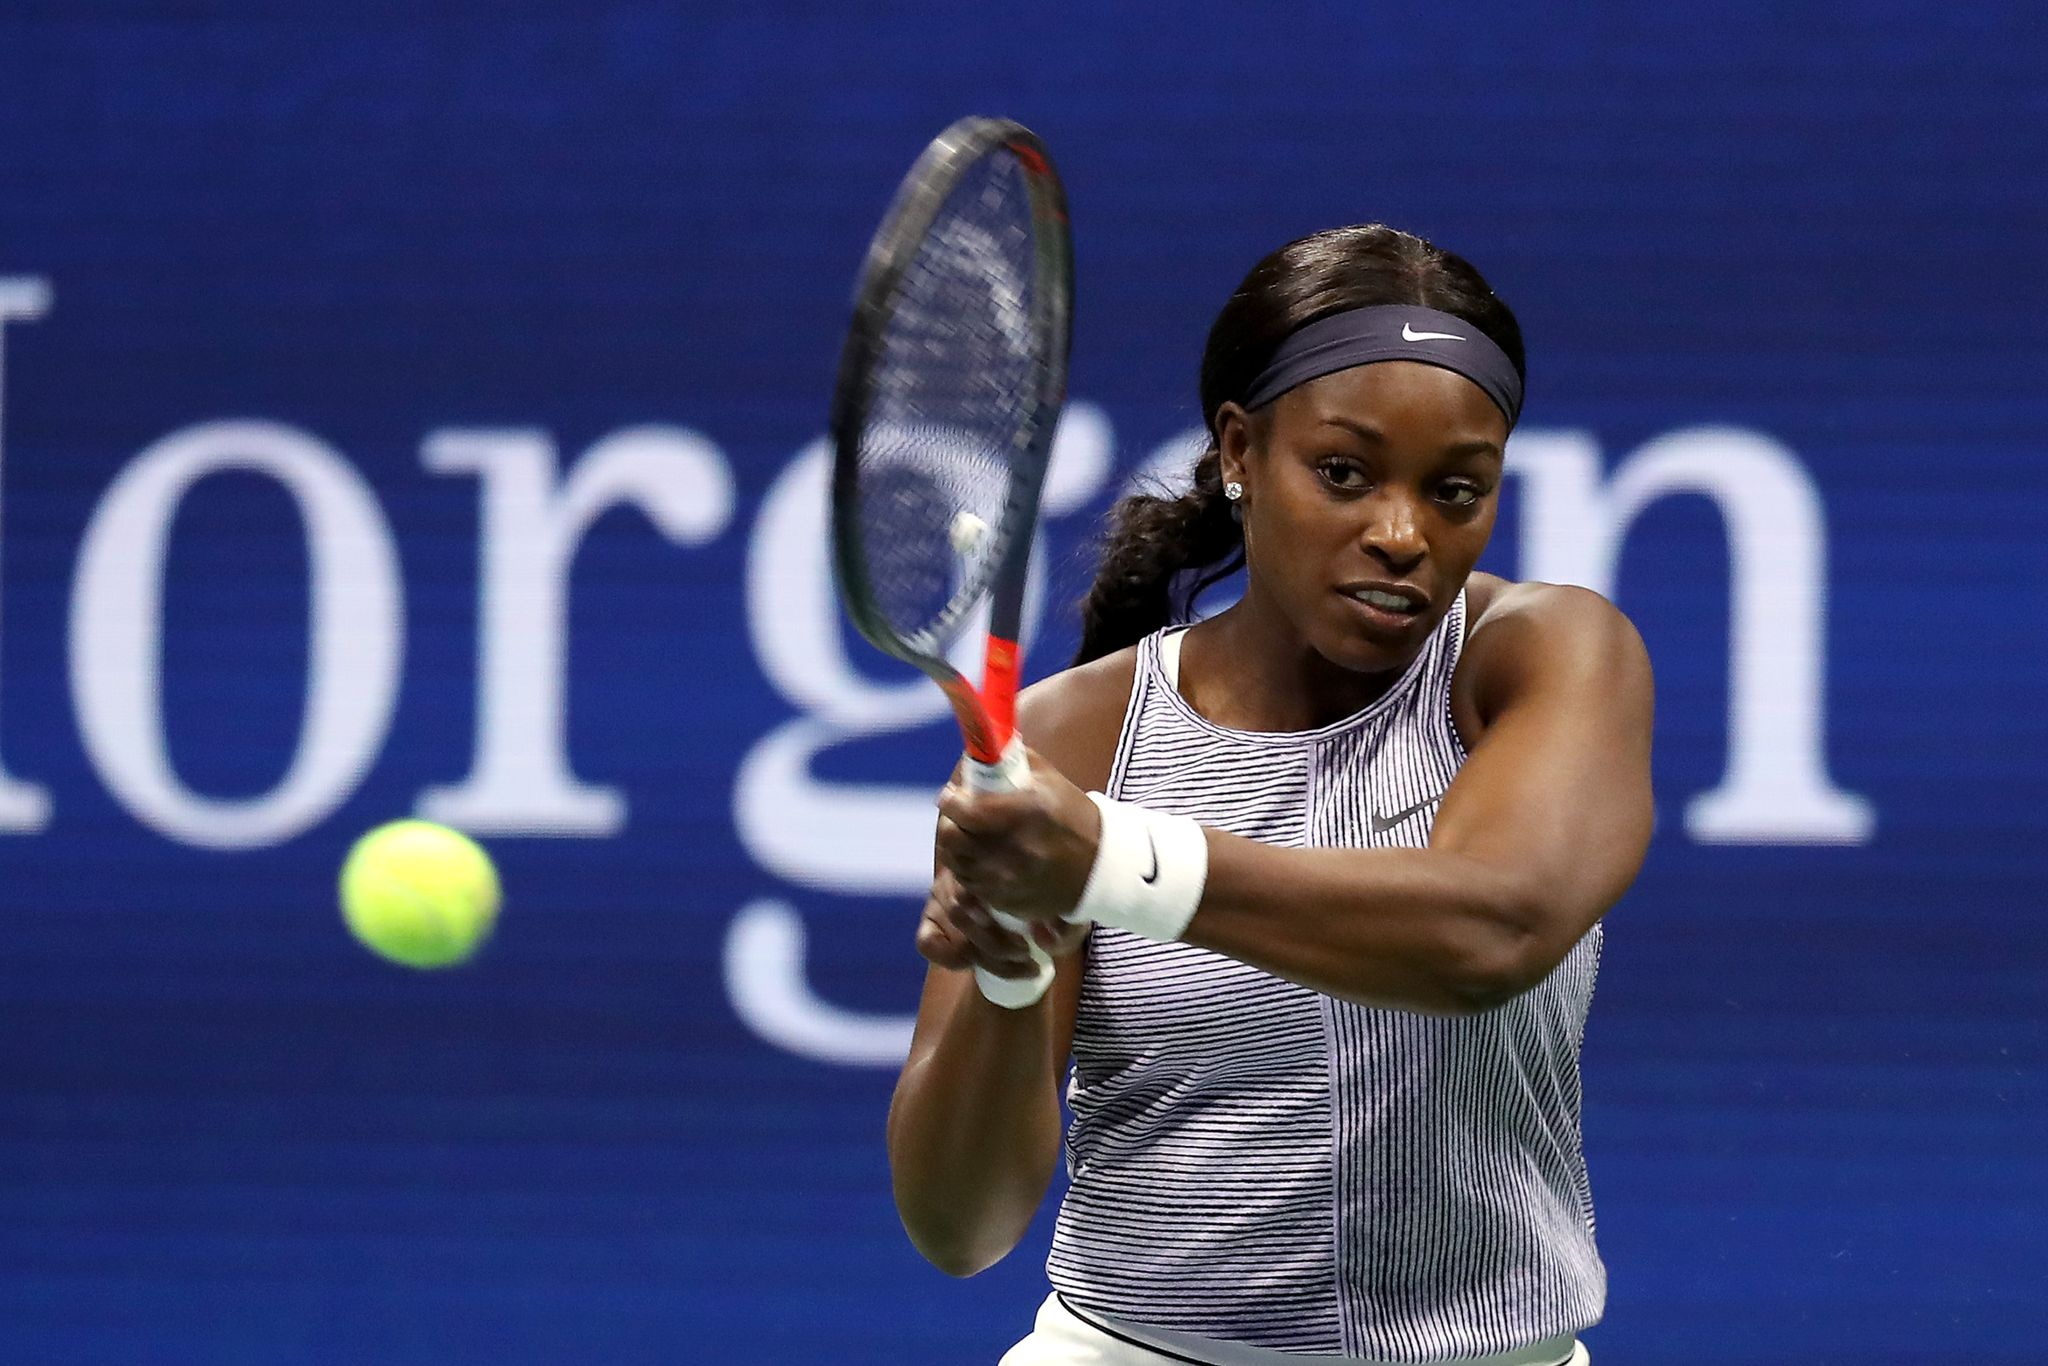 Sloane Stephens playing tennis at the 2019 US Open on August 27, 2019 in New York. | Photo: Getty Images